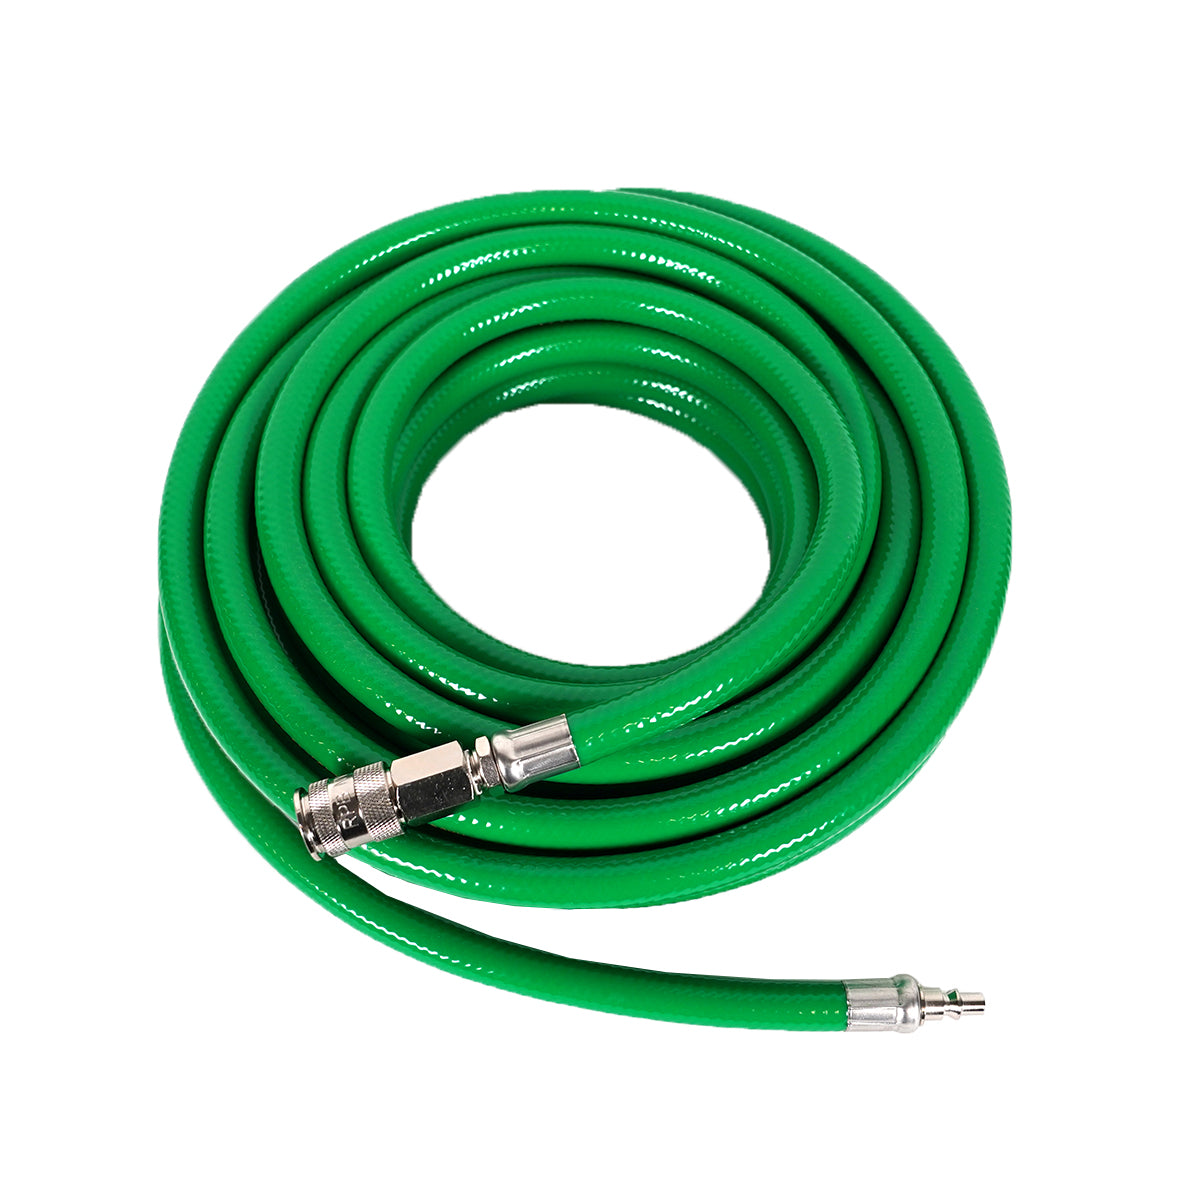 50ft Breathing Air Supply Hose 3/8in Diameter for Nova 3® NV2029 - 134864/001